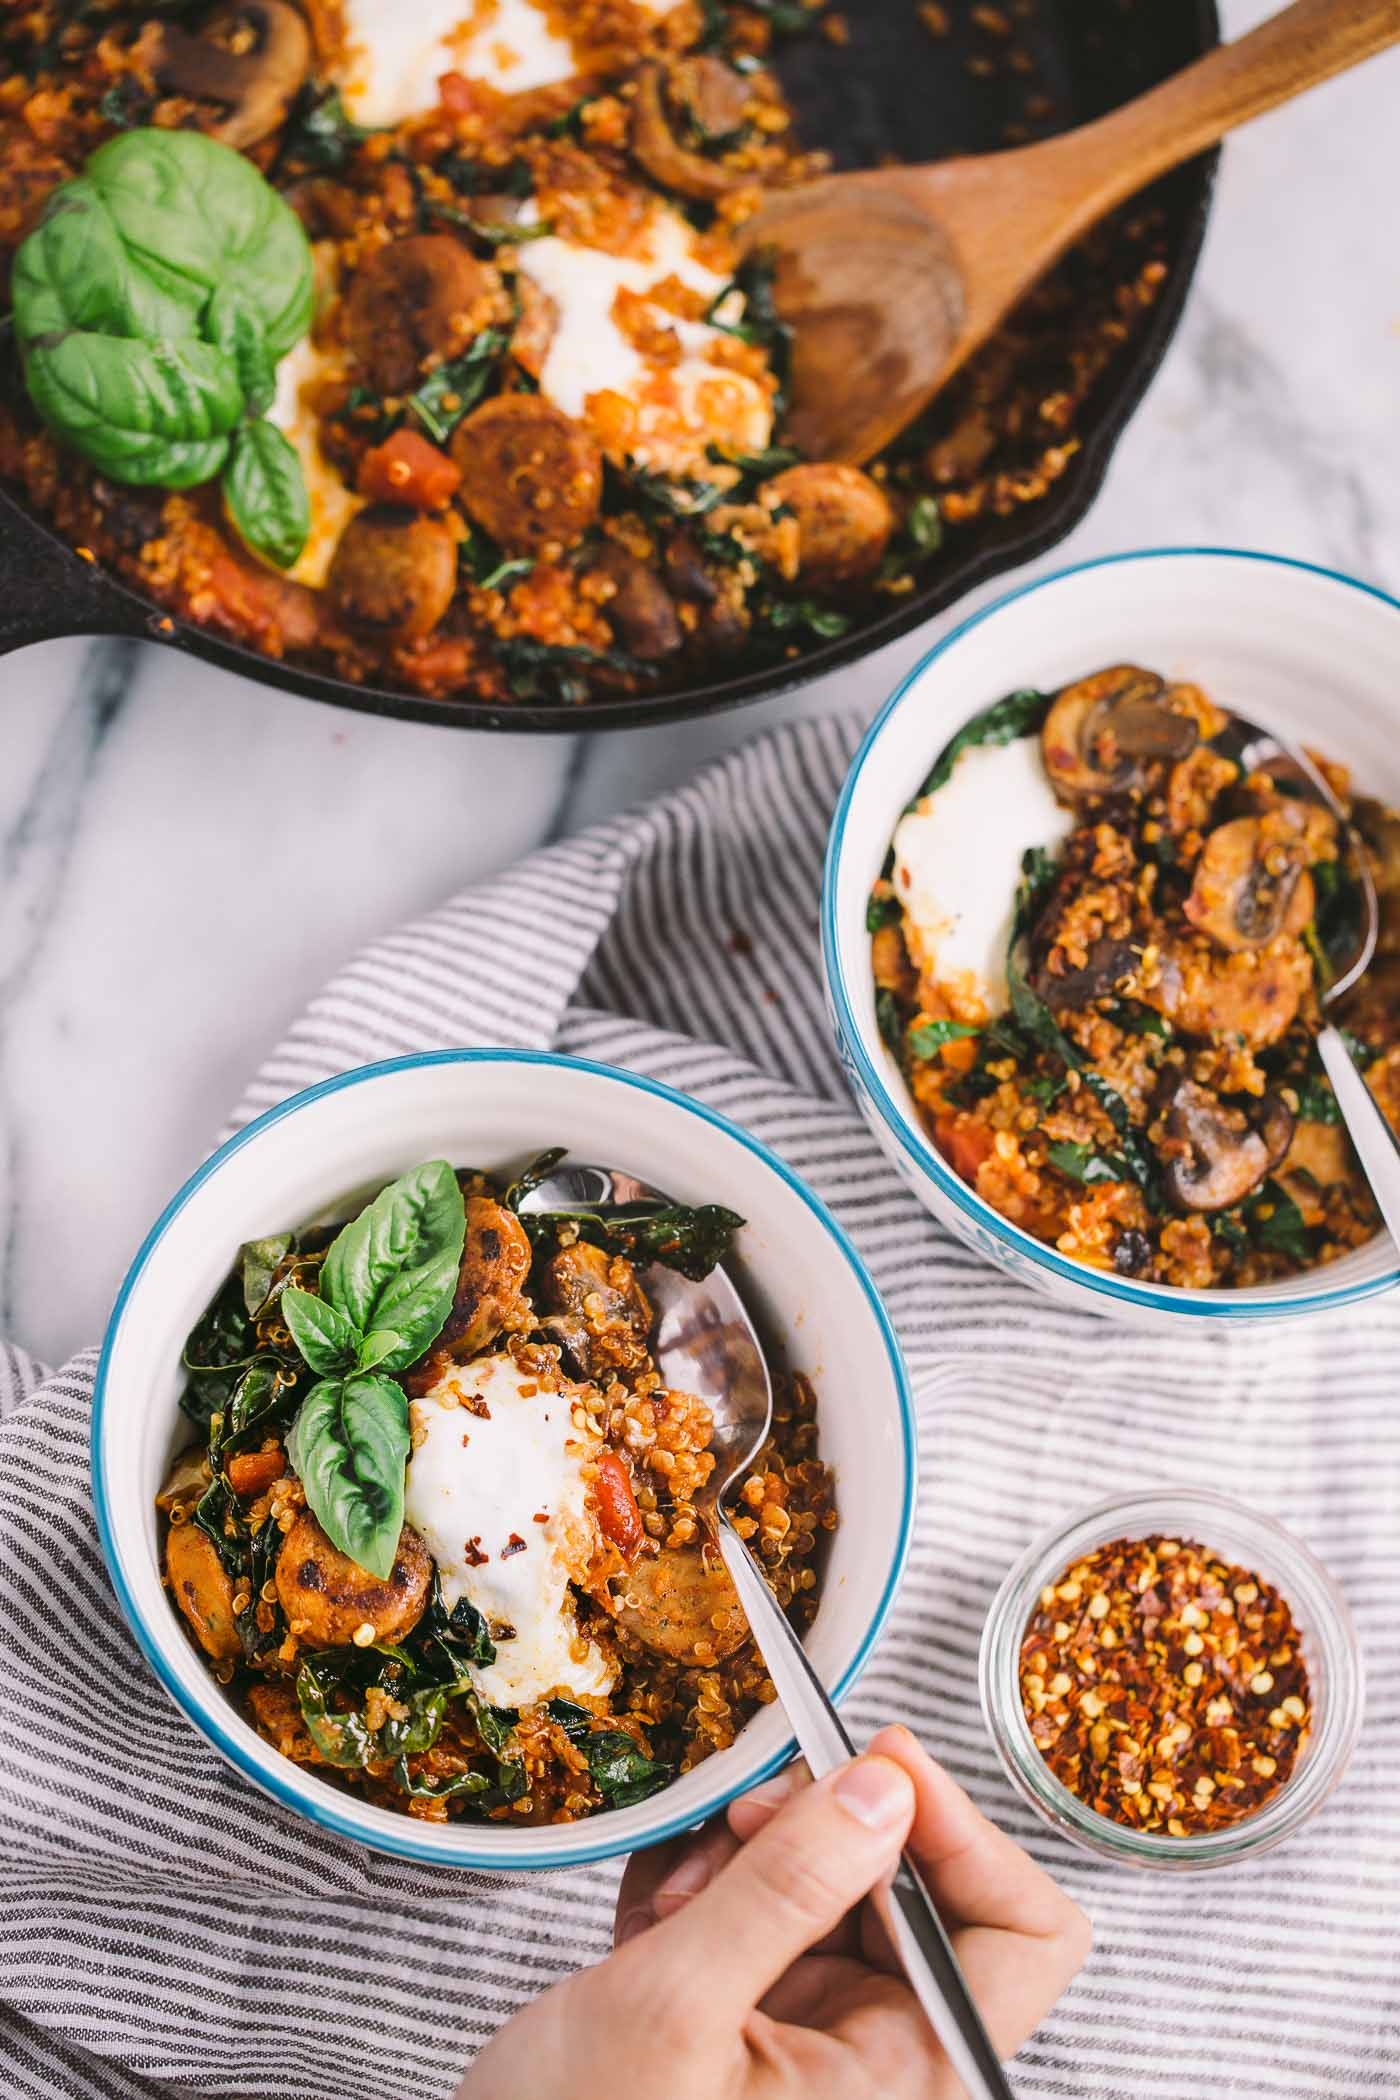 a 15-minute skillet dinner with quinoa, kale, trader joe's chicken sausage, & trader joe's arrabiata sauce. weeknight cooking could not be easier (or more delicious!) than this 15-minute trader joe's skillet! #playswellwithbutter #skilletdinner #easydinnerrecipe #traderjoes #traderjoesrecipe #skilletrecipe #healthydinnerrecipe